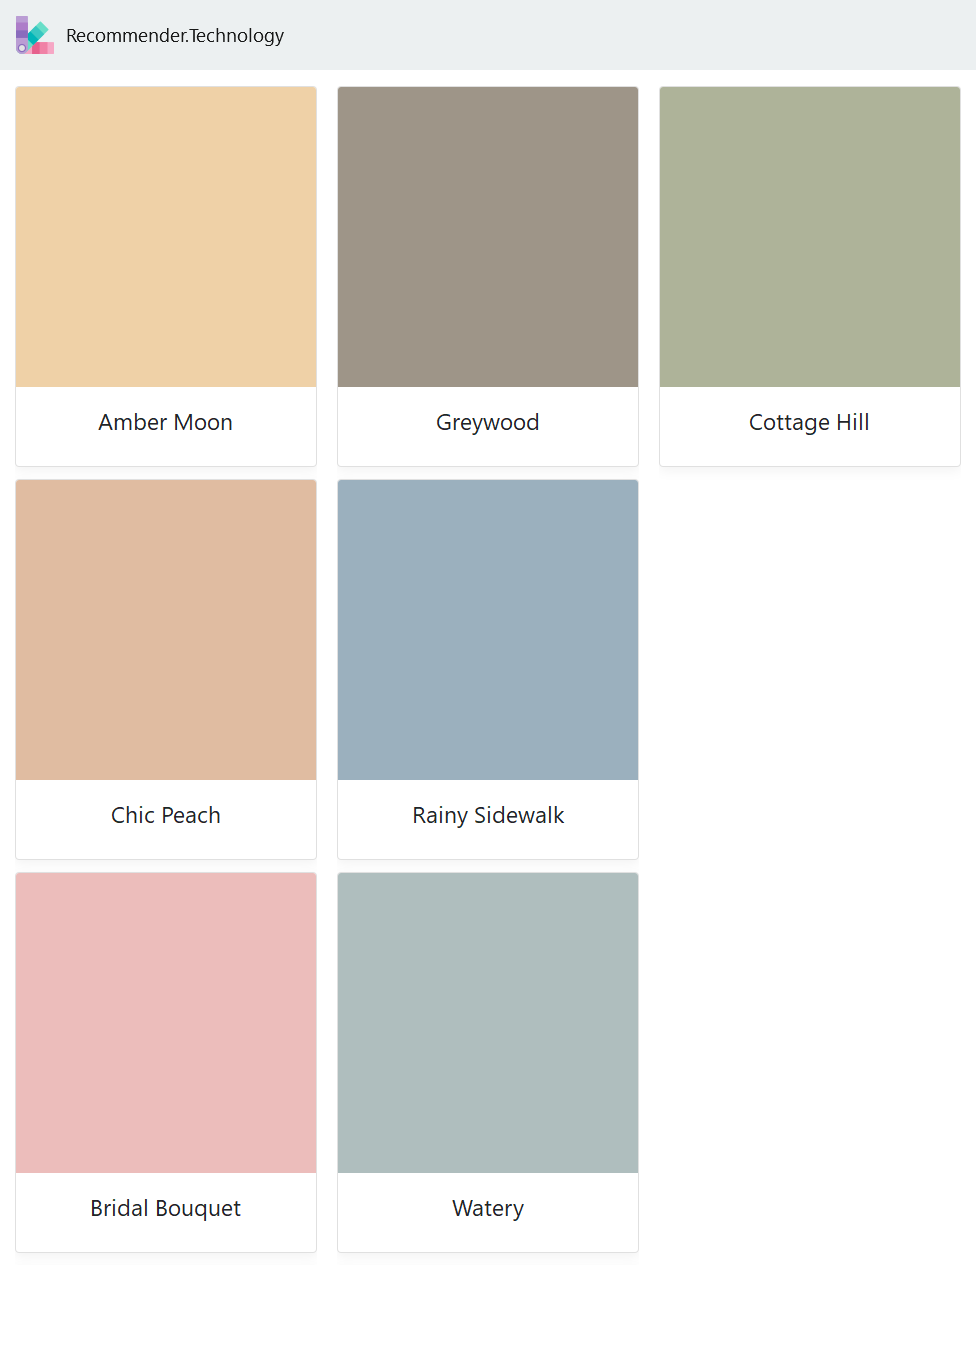 Amber Moon Chic Peach Bridal Bouquet Greywood Rainy Sidewalk Watery Cottage Hill Behr Paint Colors Pink Mimosa Paint Color Palettes